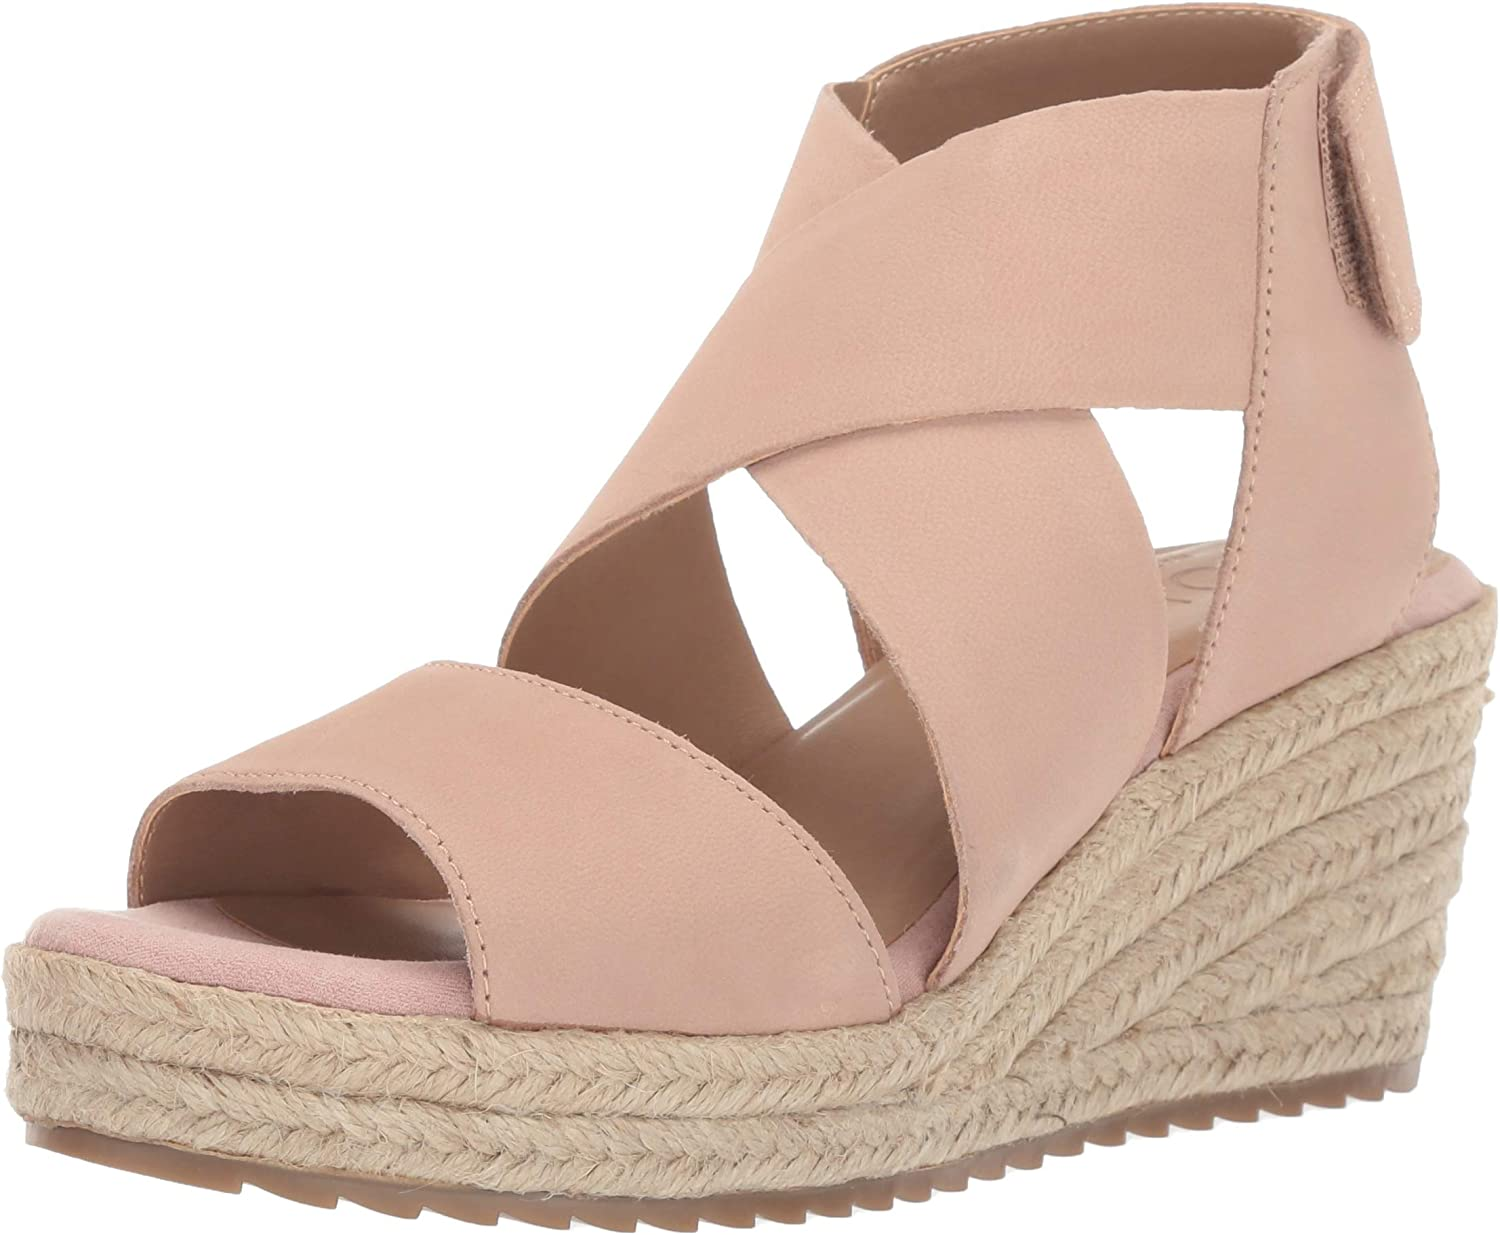 Natural Soul Womens Oshay Wedge Sandal